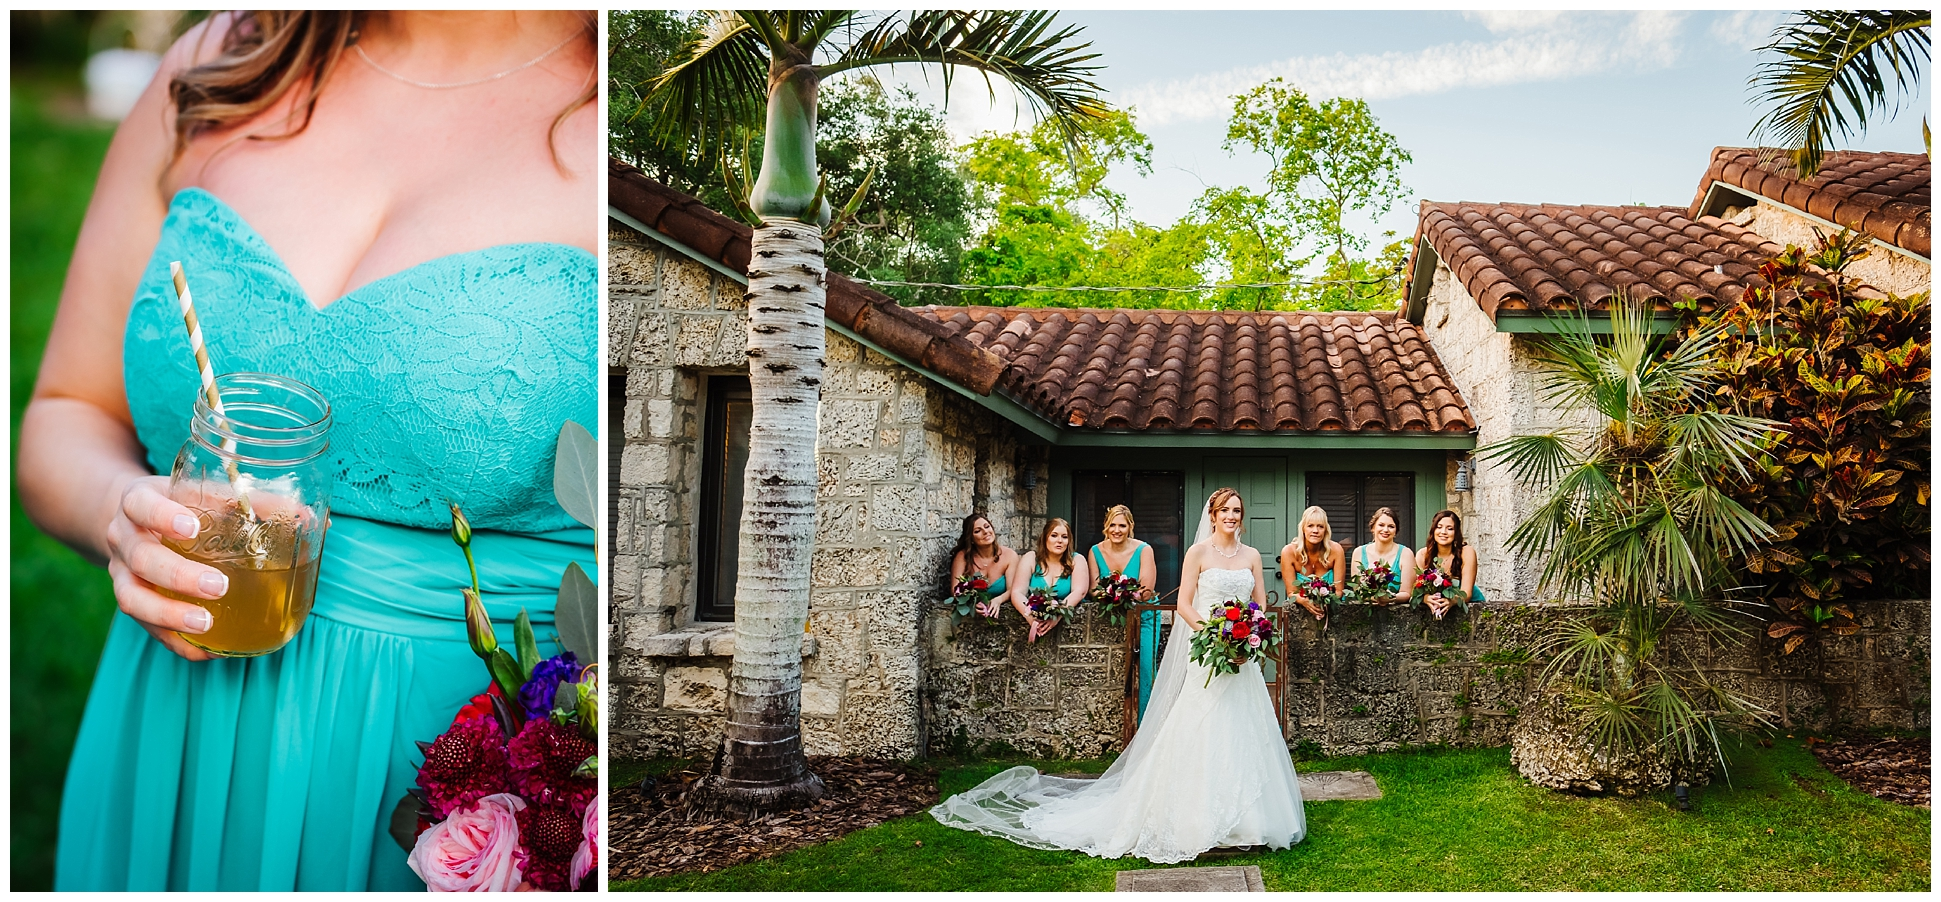 florida-destination-wedding-photographer-enchanted-tropical-miami-homestead-cooper-estate-teal_0060.jpg